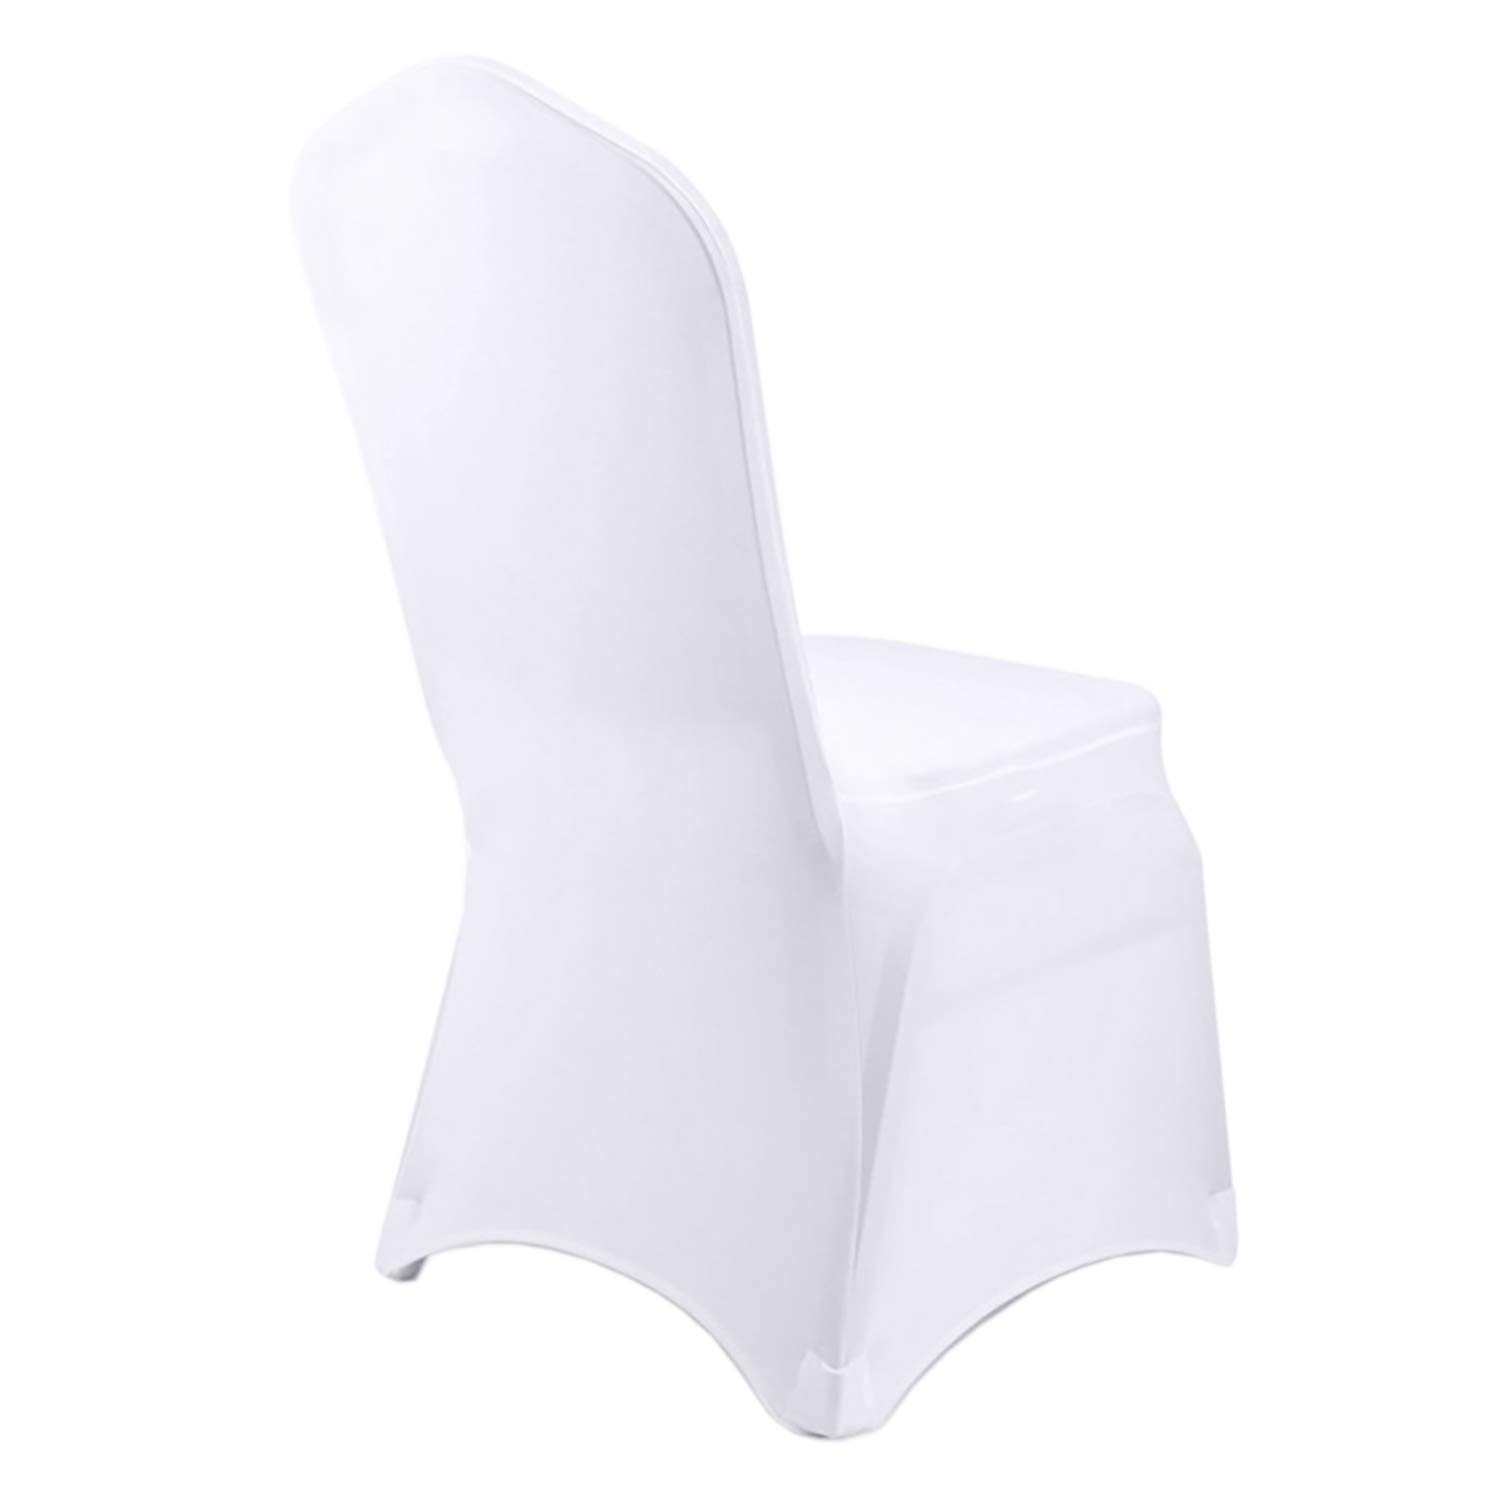 Special T White Chair Covers – 50 Pack Banquet Chair Covers, Polyester & Spandex Chair Covers for Wedding Party Dining